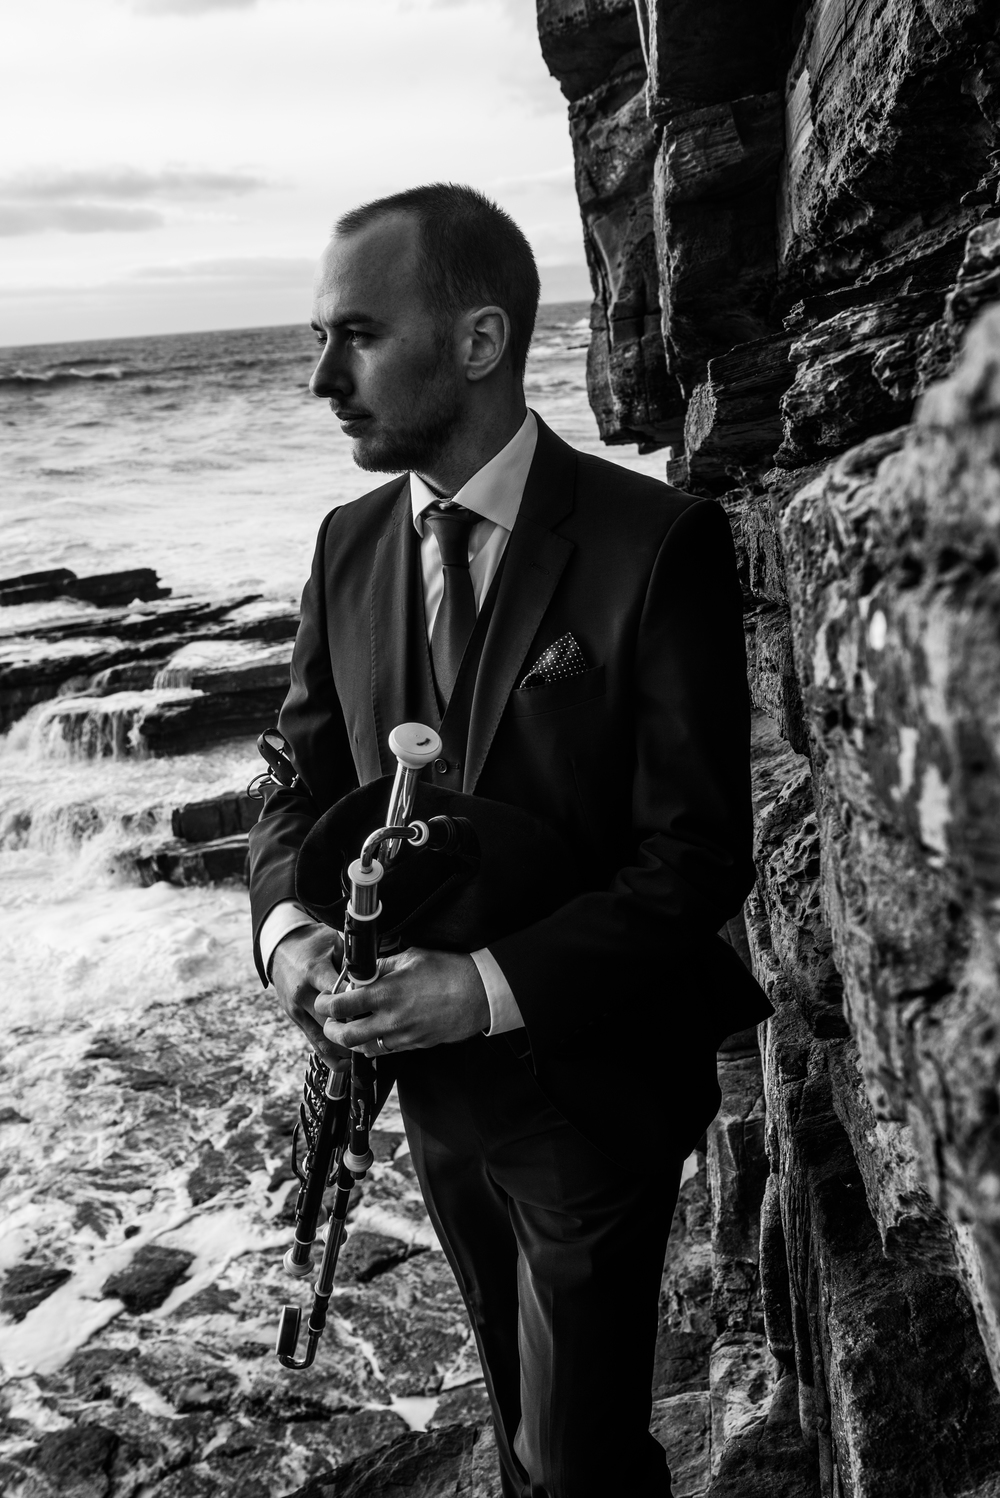 Irish uilleann piper available for weddings all over Ireland, including Dublin and Galway